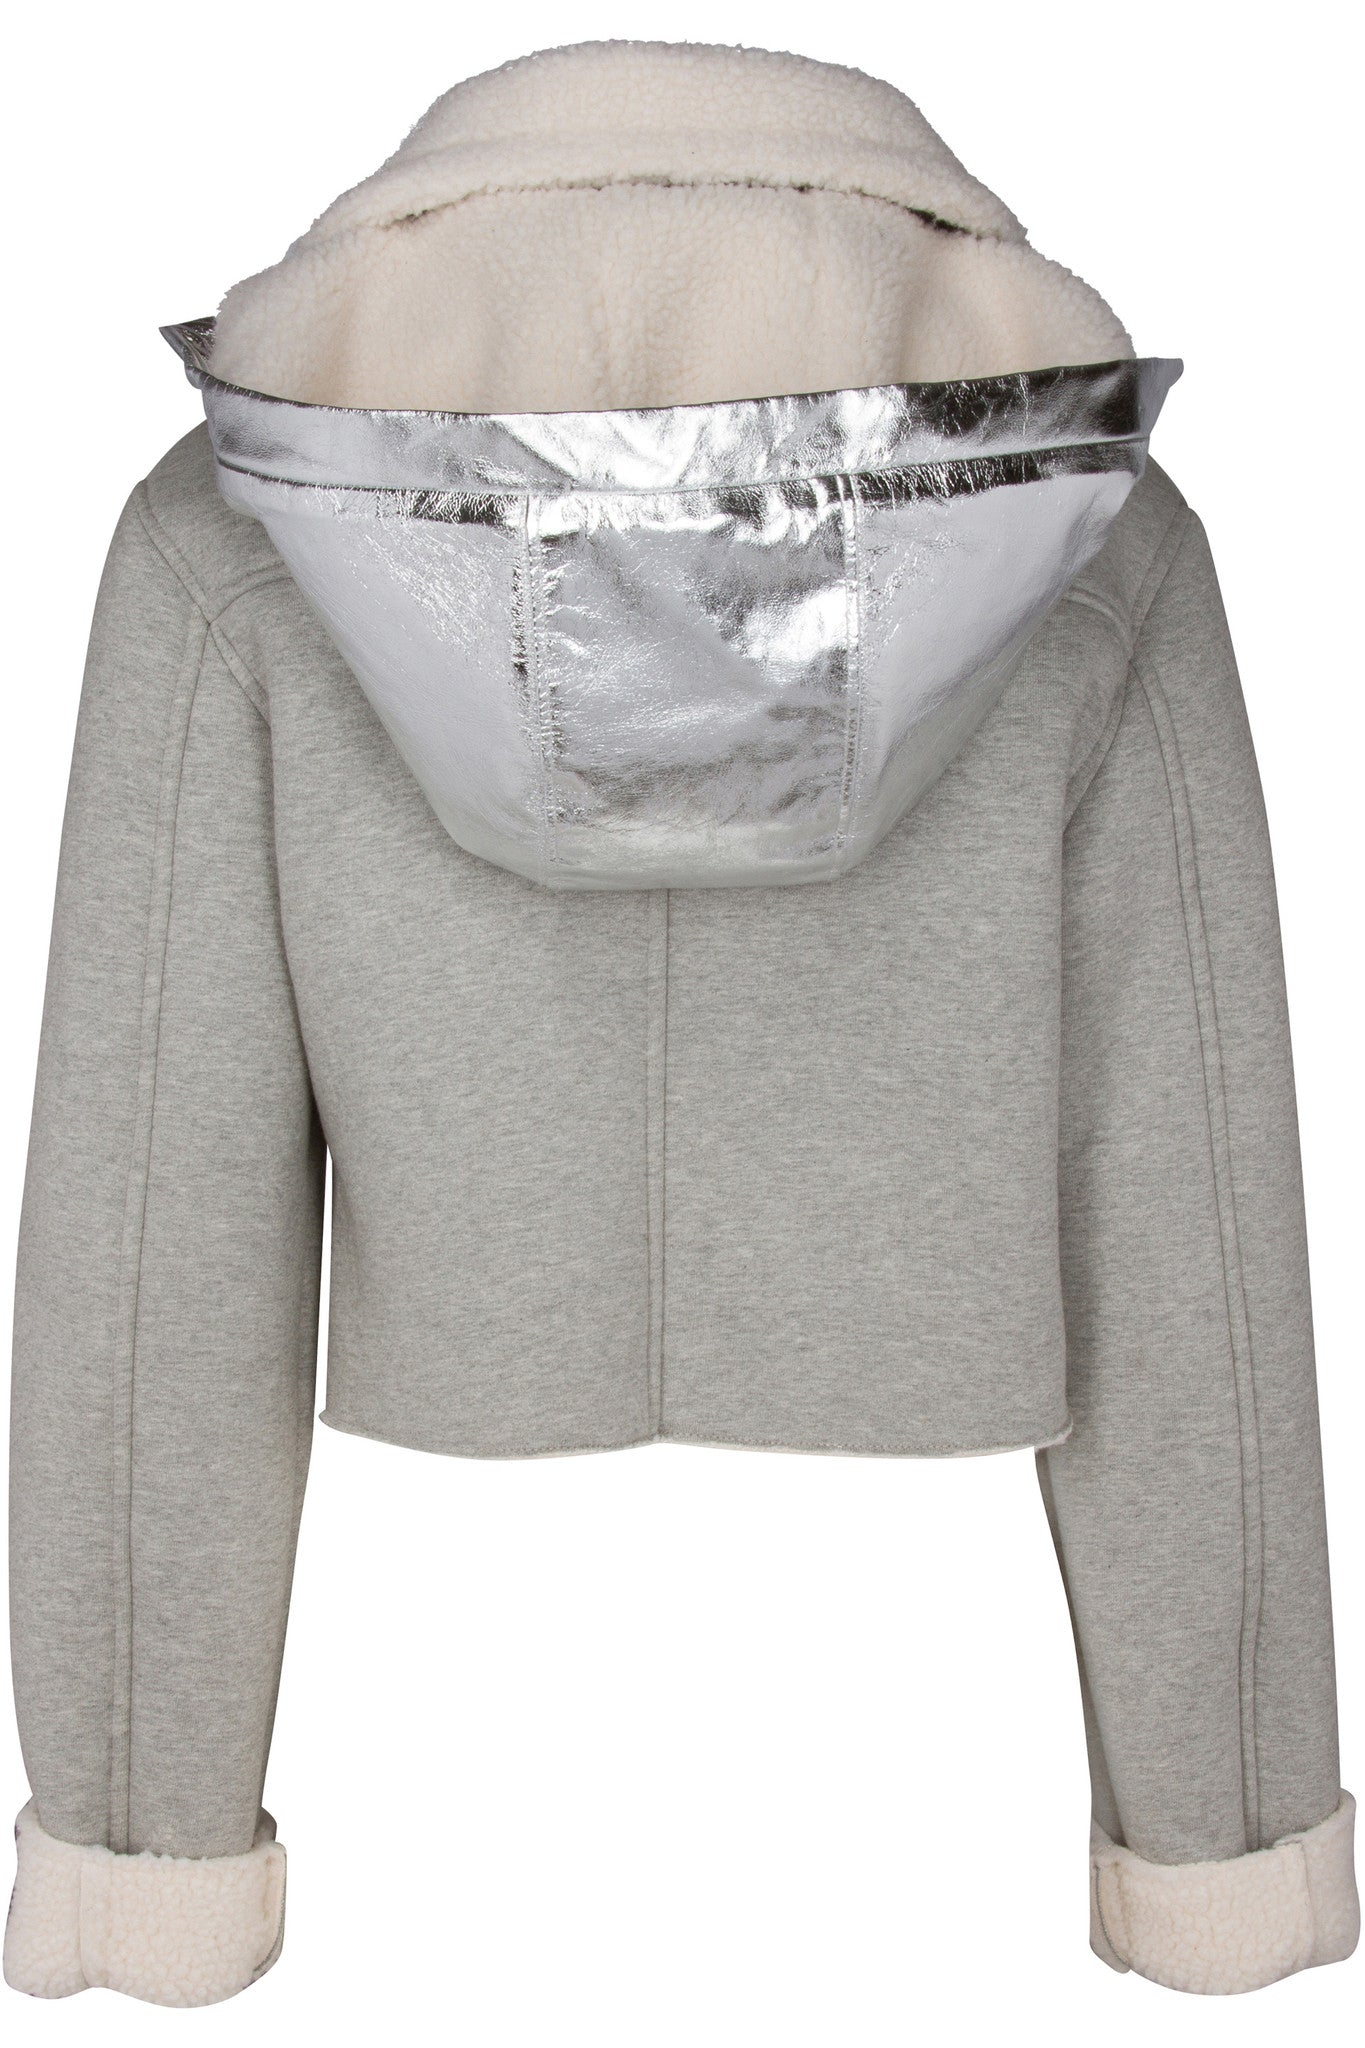 CROPPED FLEECE JACKET JACKETS by KENDALL + KYLIE